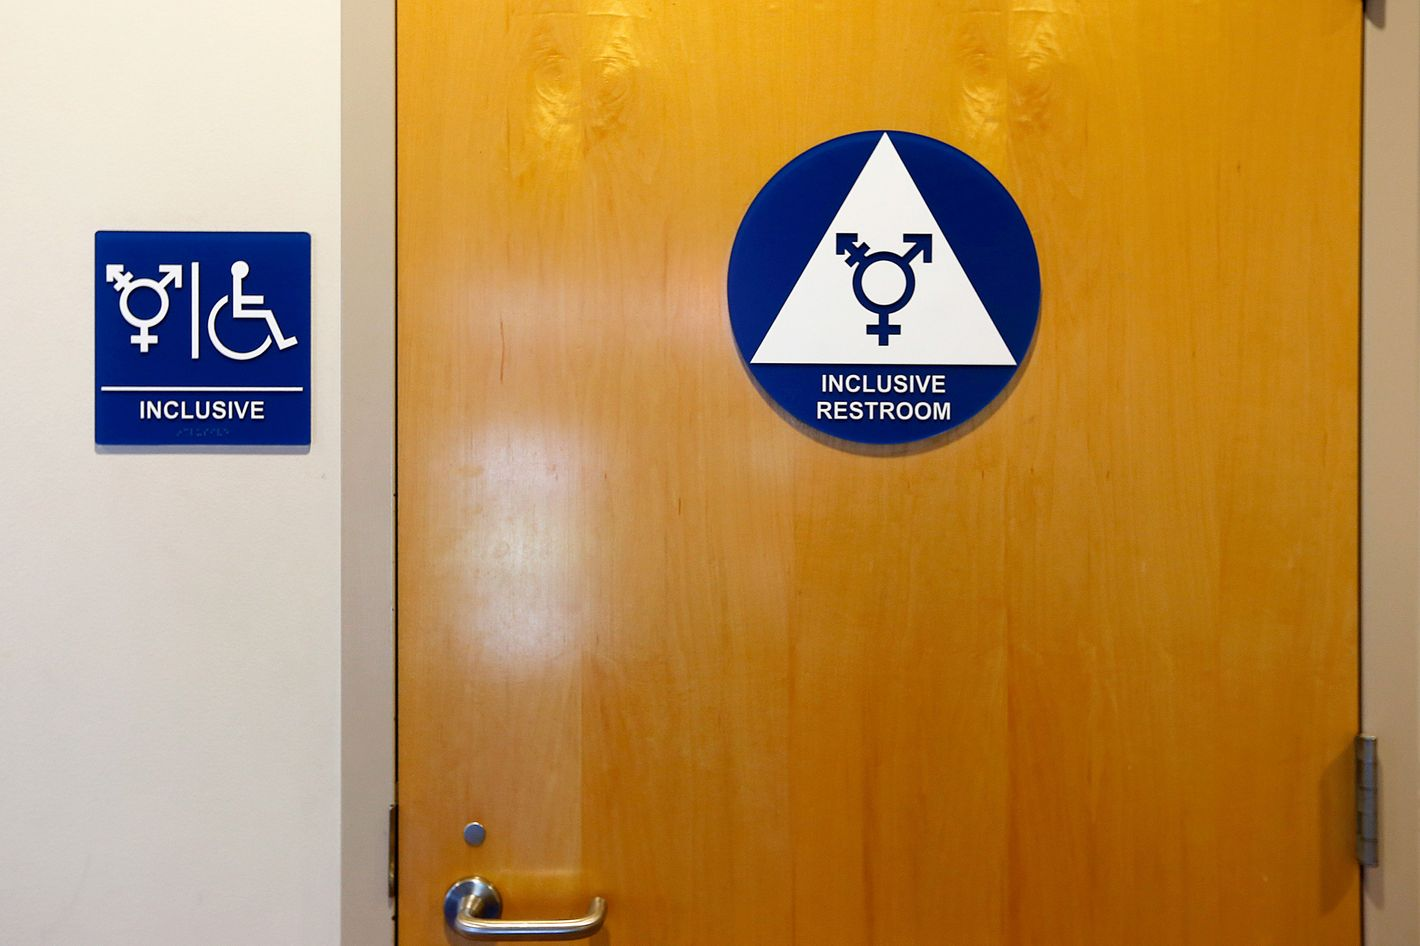 public bathroom controversies due to transgender issue in america